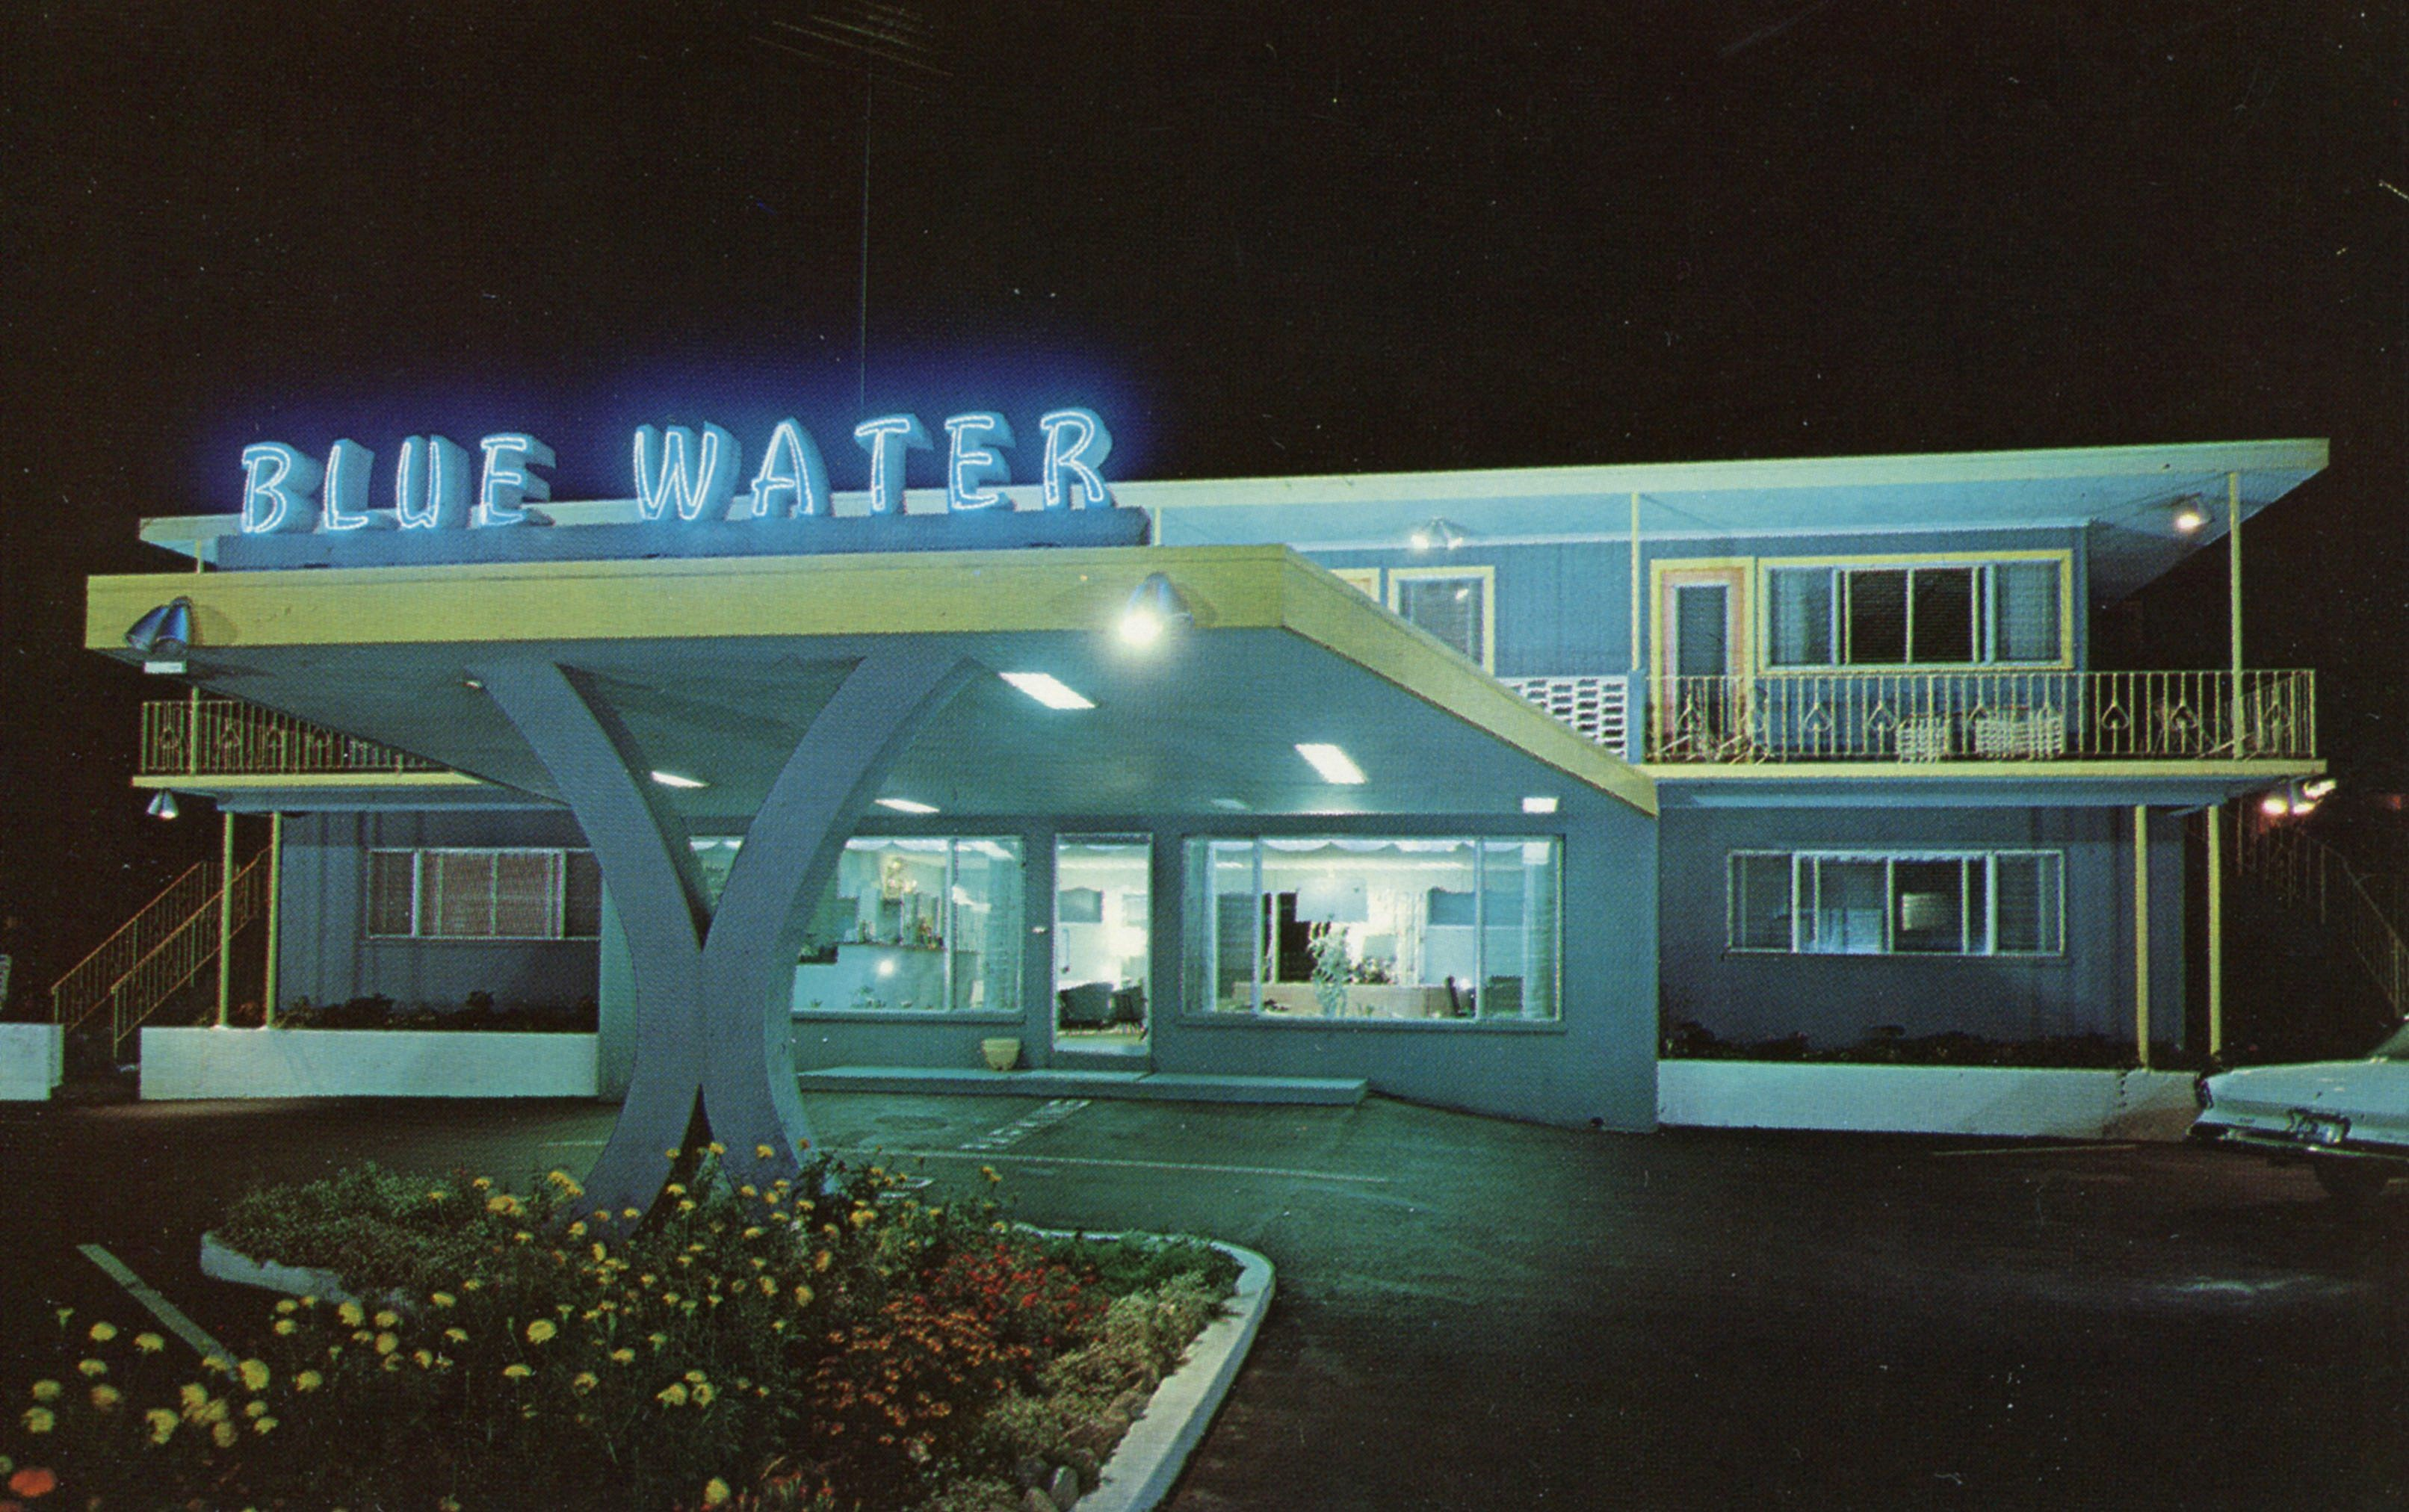 Blue Water Resort - 291 South Shore Drive, South Yarmouth, Massachusetts U.S.A. - 1960s